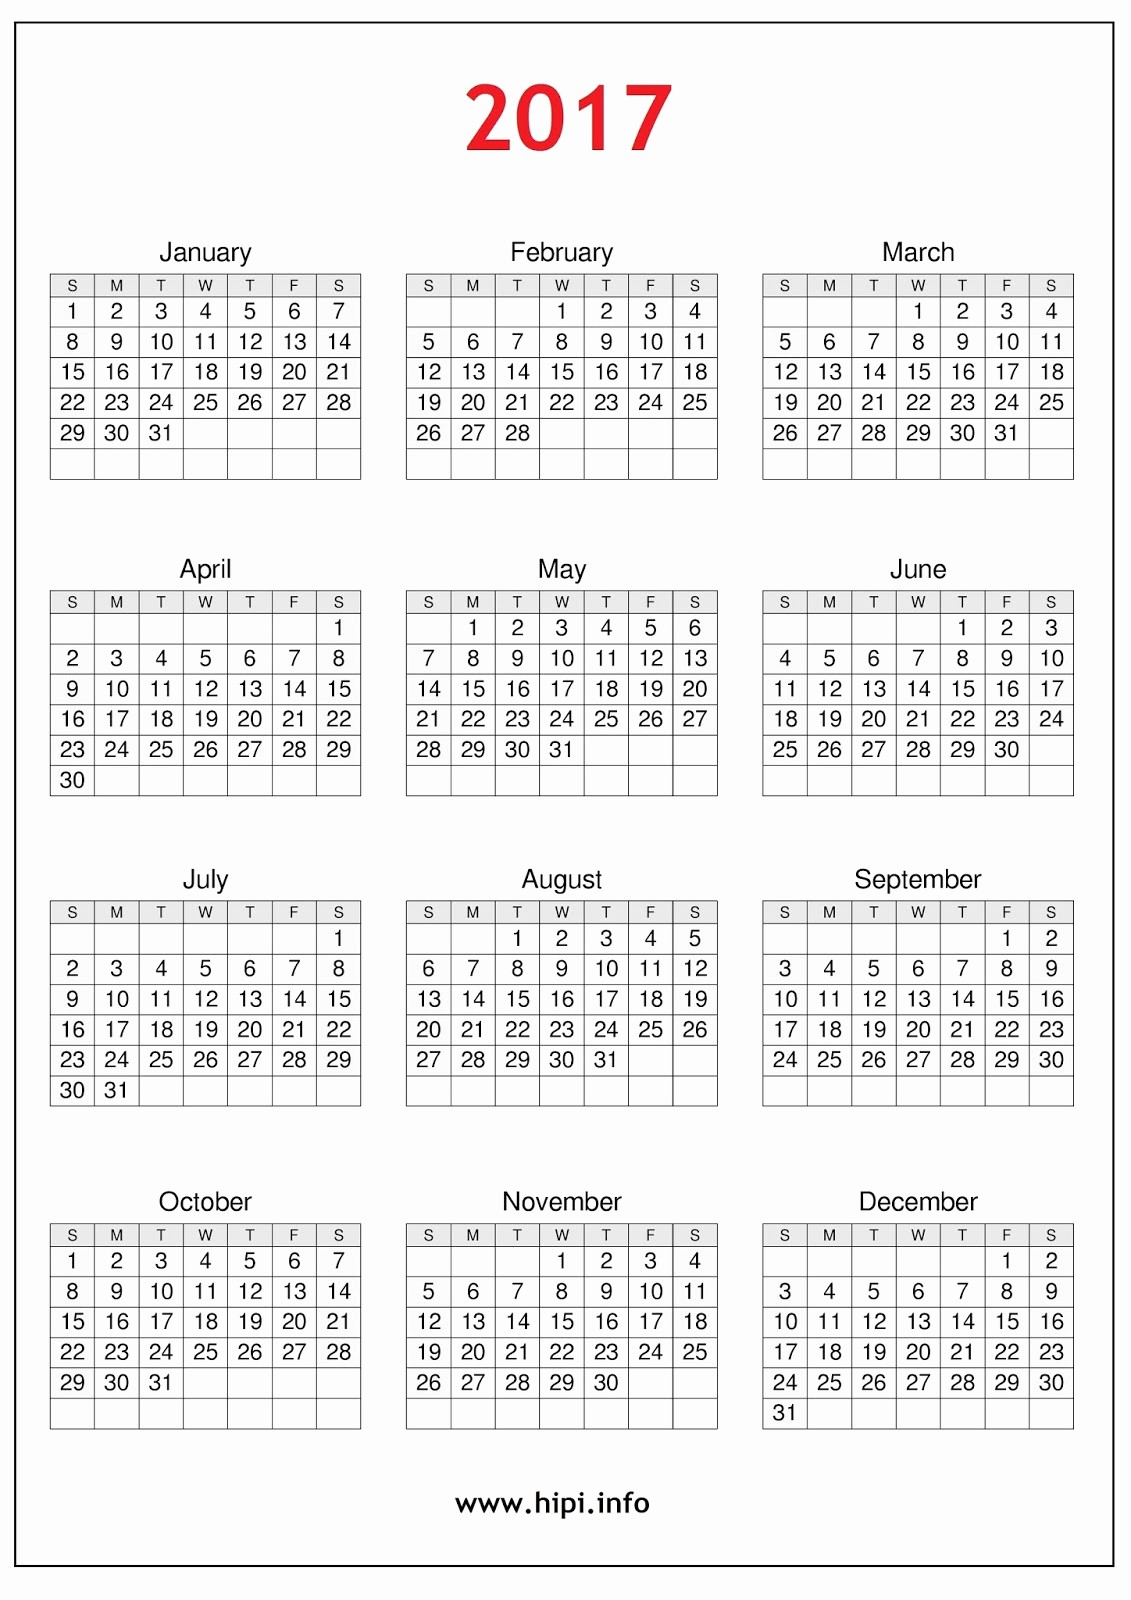 Free Printable Annual Calendar 2017 Best Of Twitter Headers Covers Wallpapers Calendars